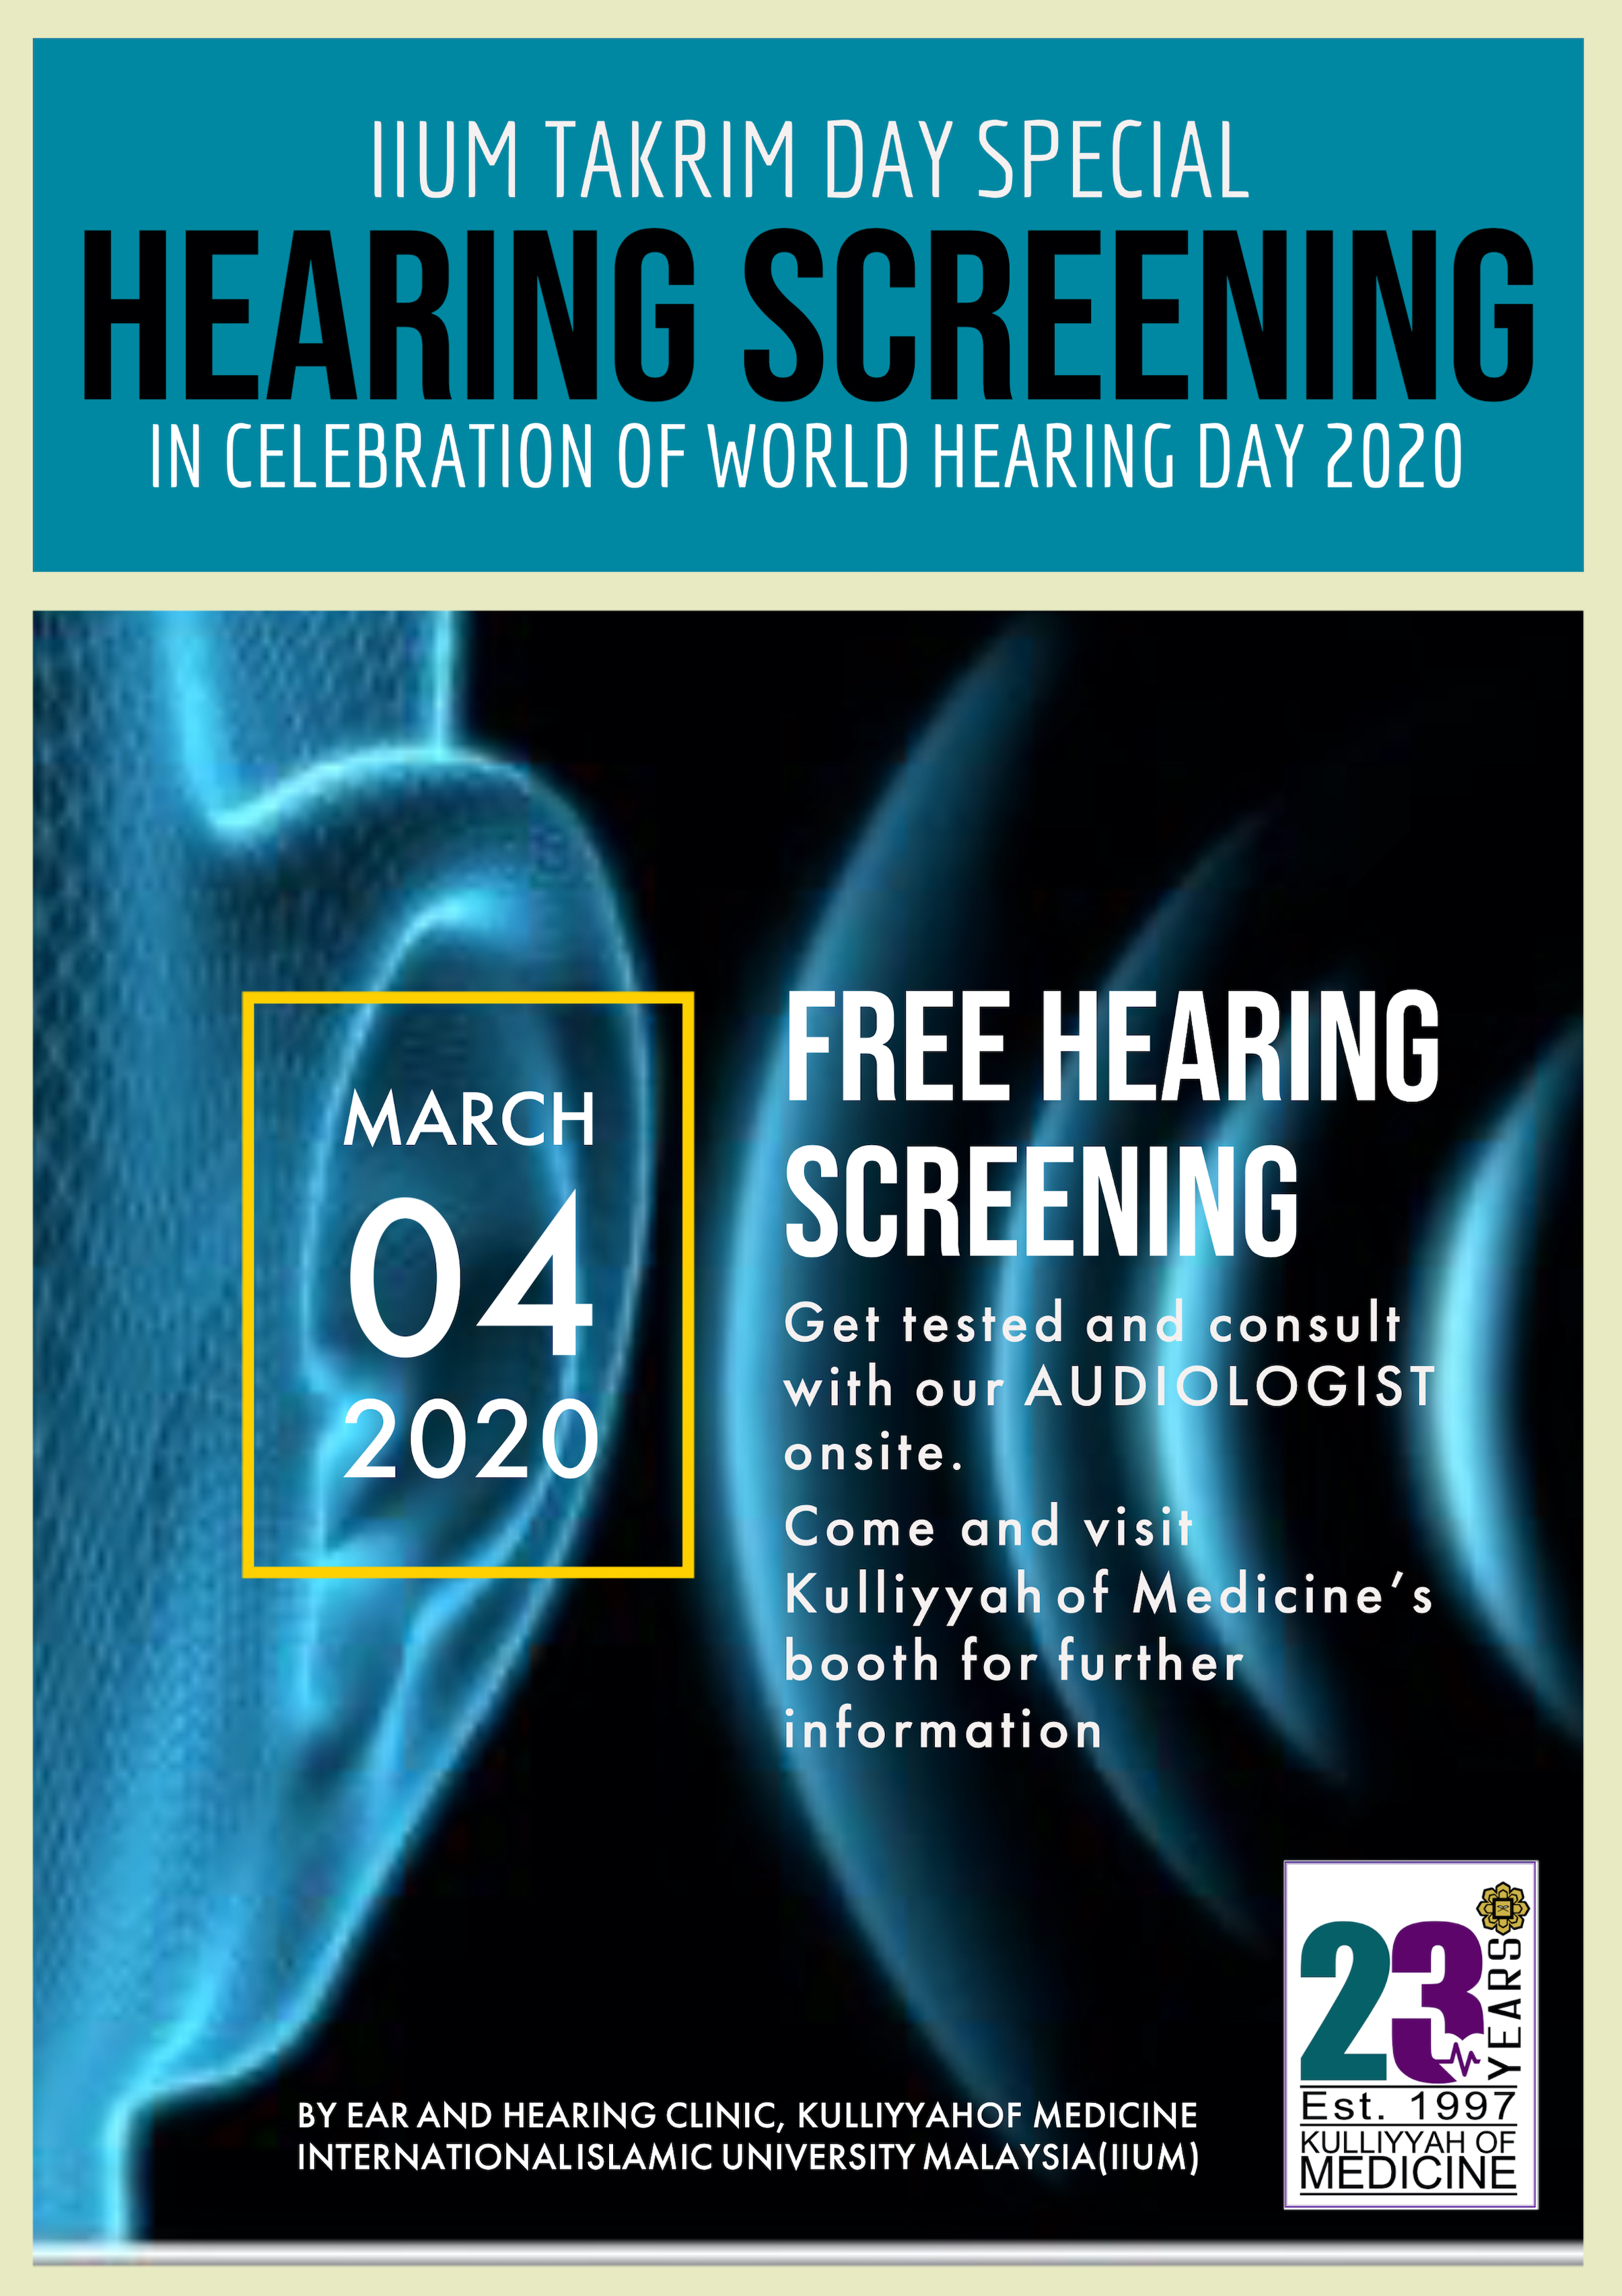 IIUM Takrim Day Special: Hearing Screening